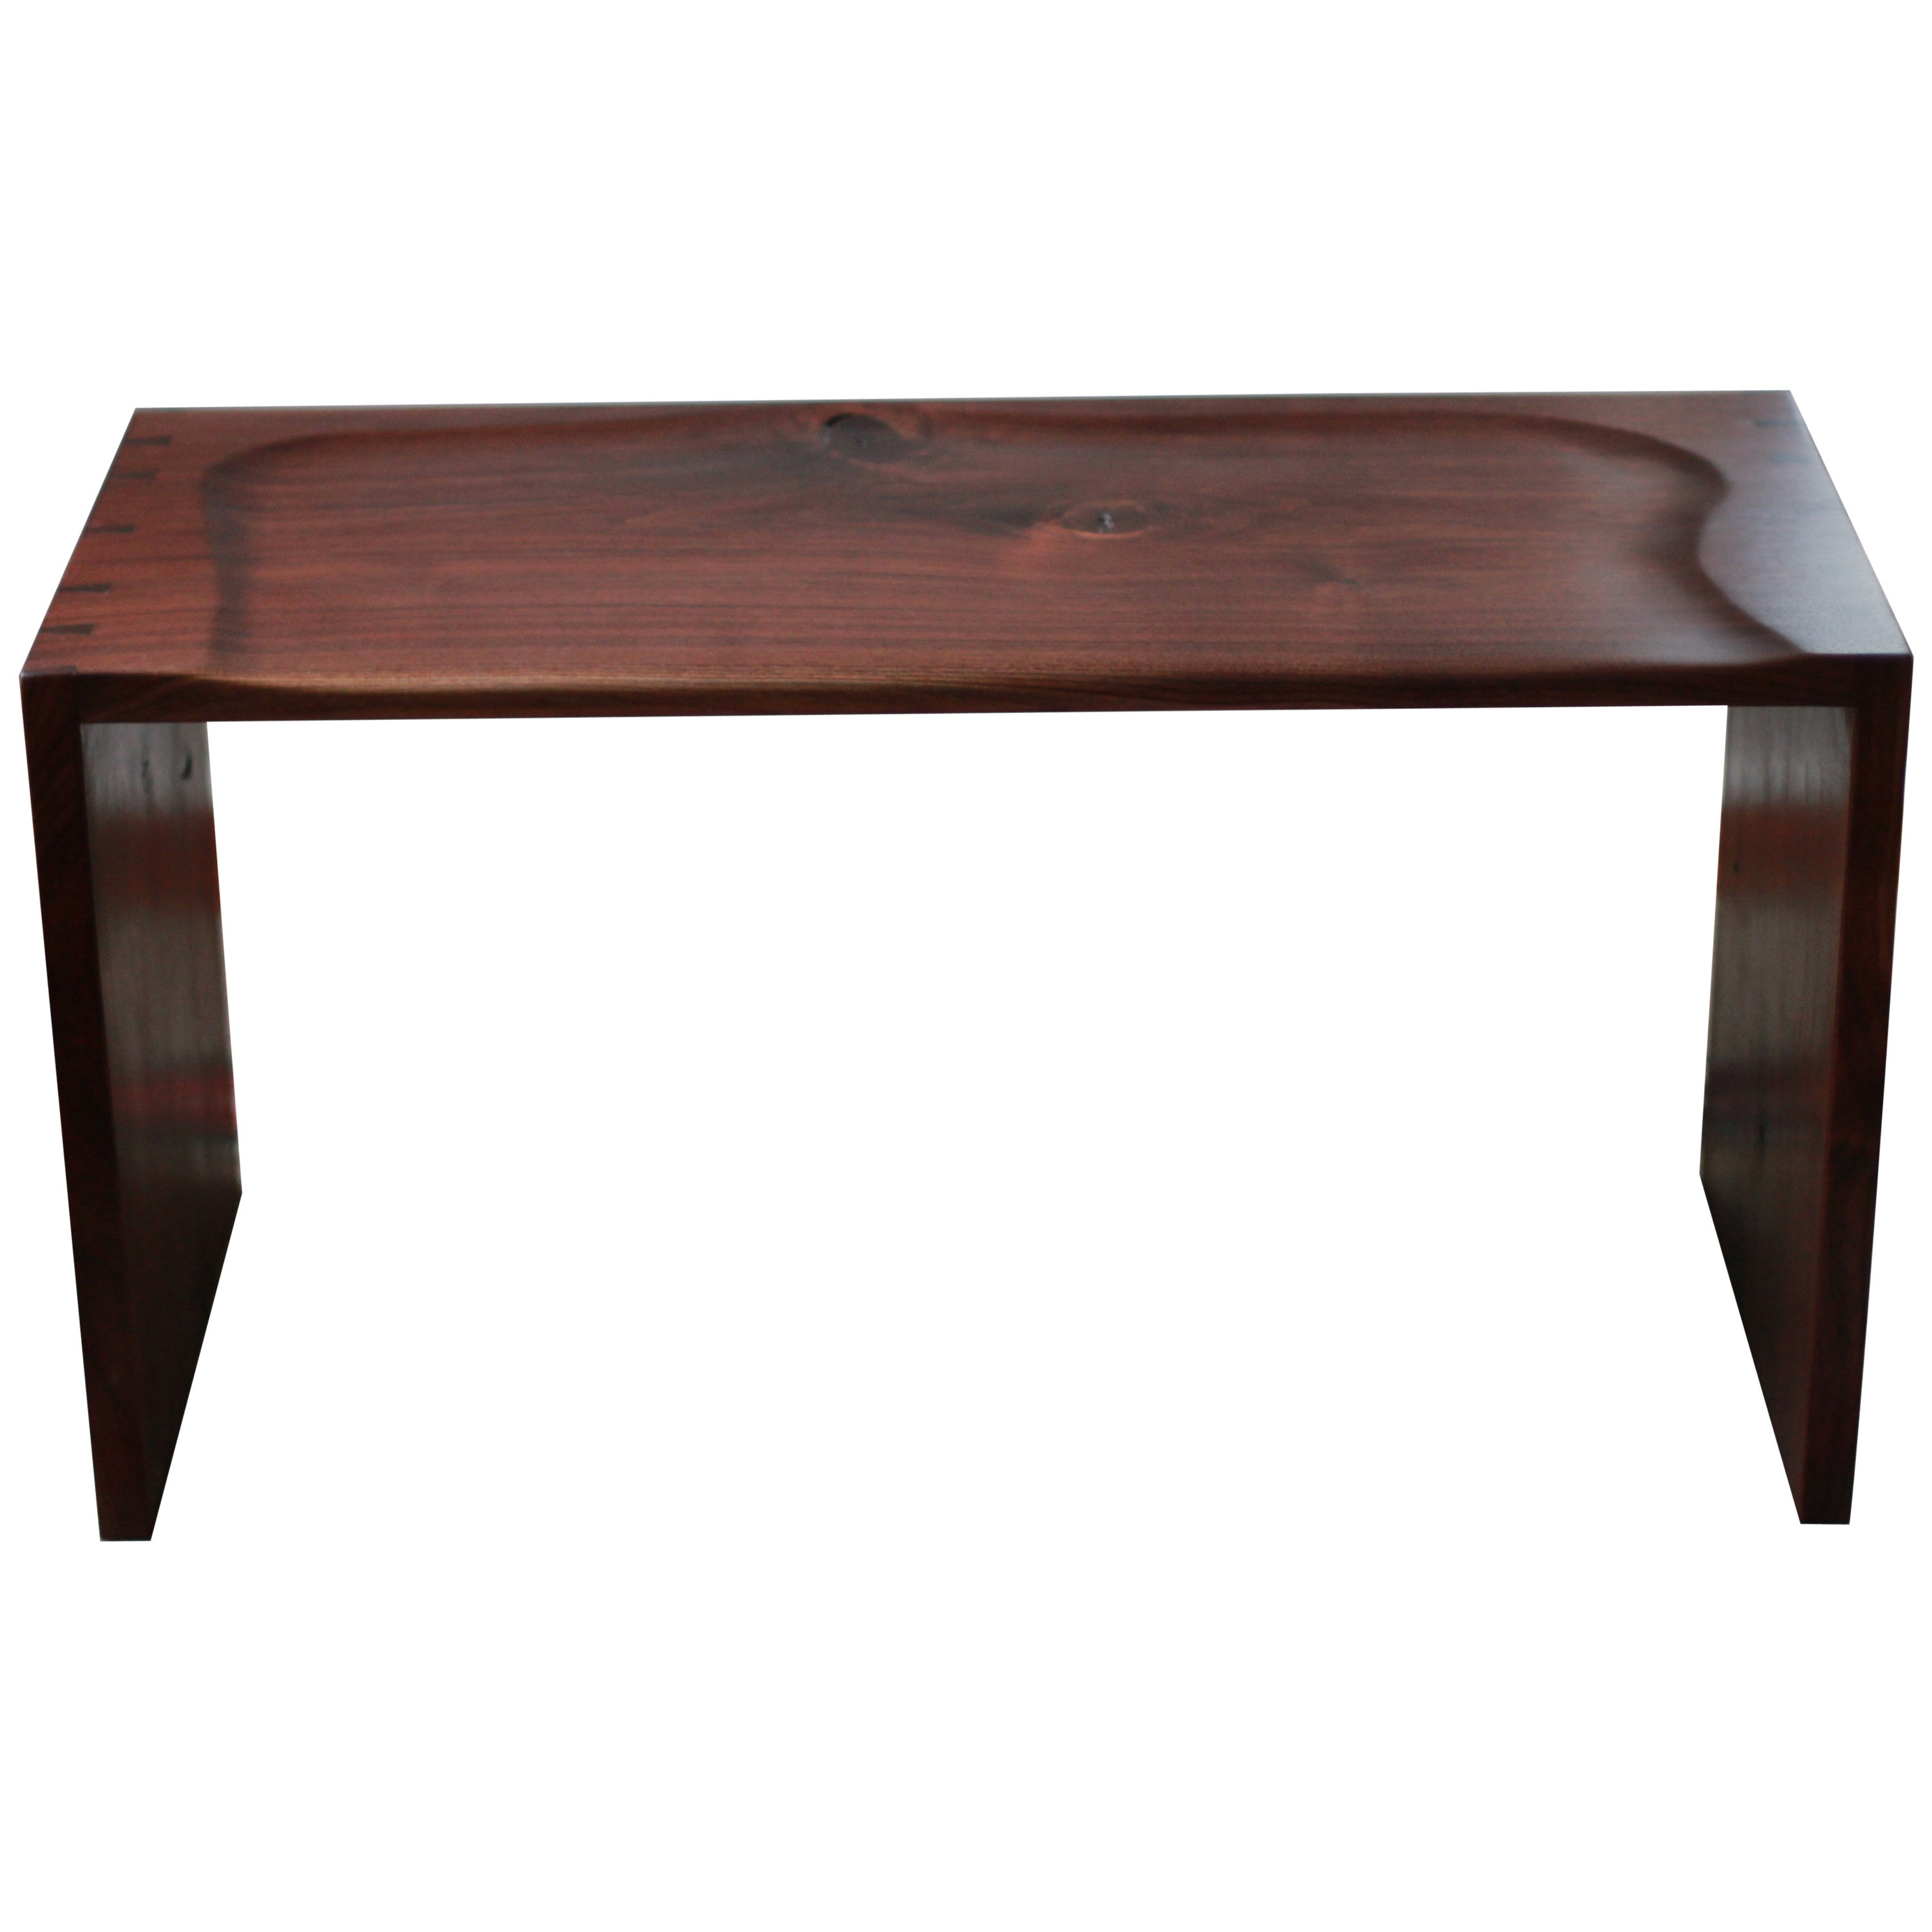 Modern Sculpted Walnut Bench with Dovetail Joinery